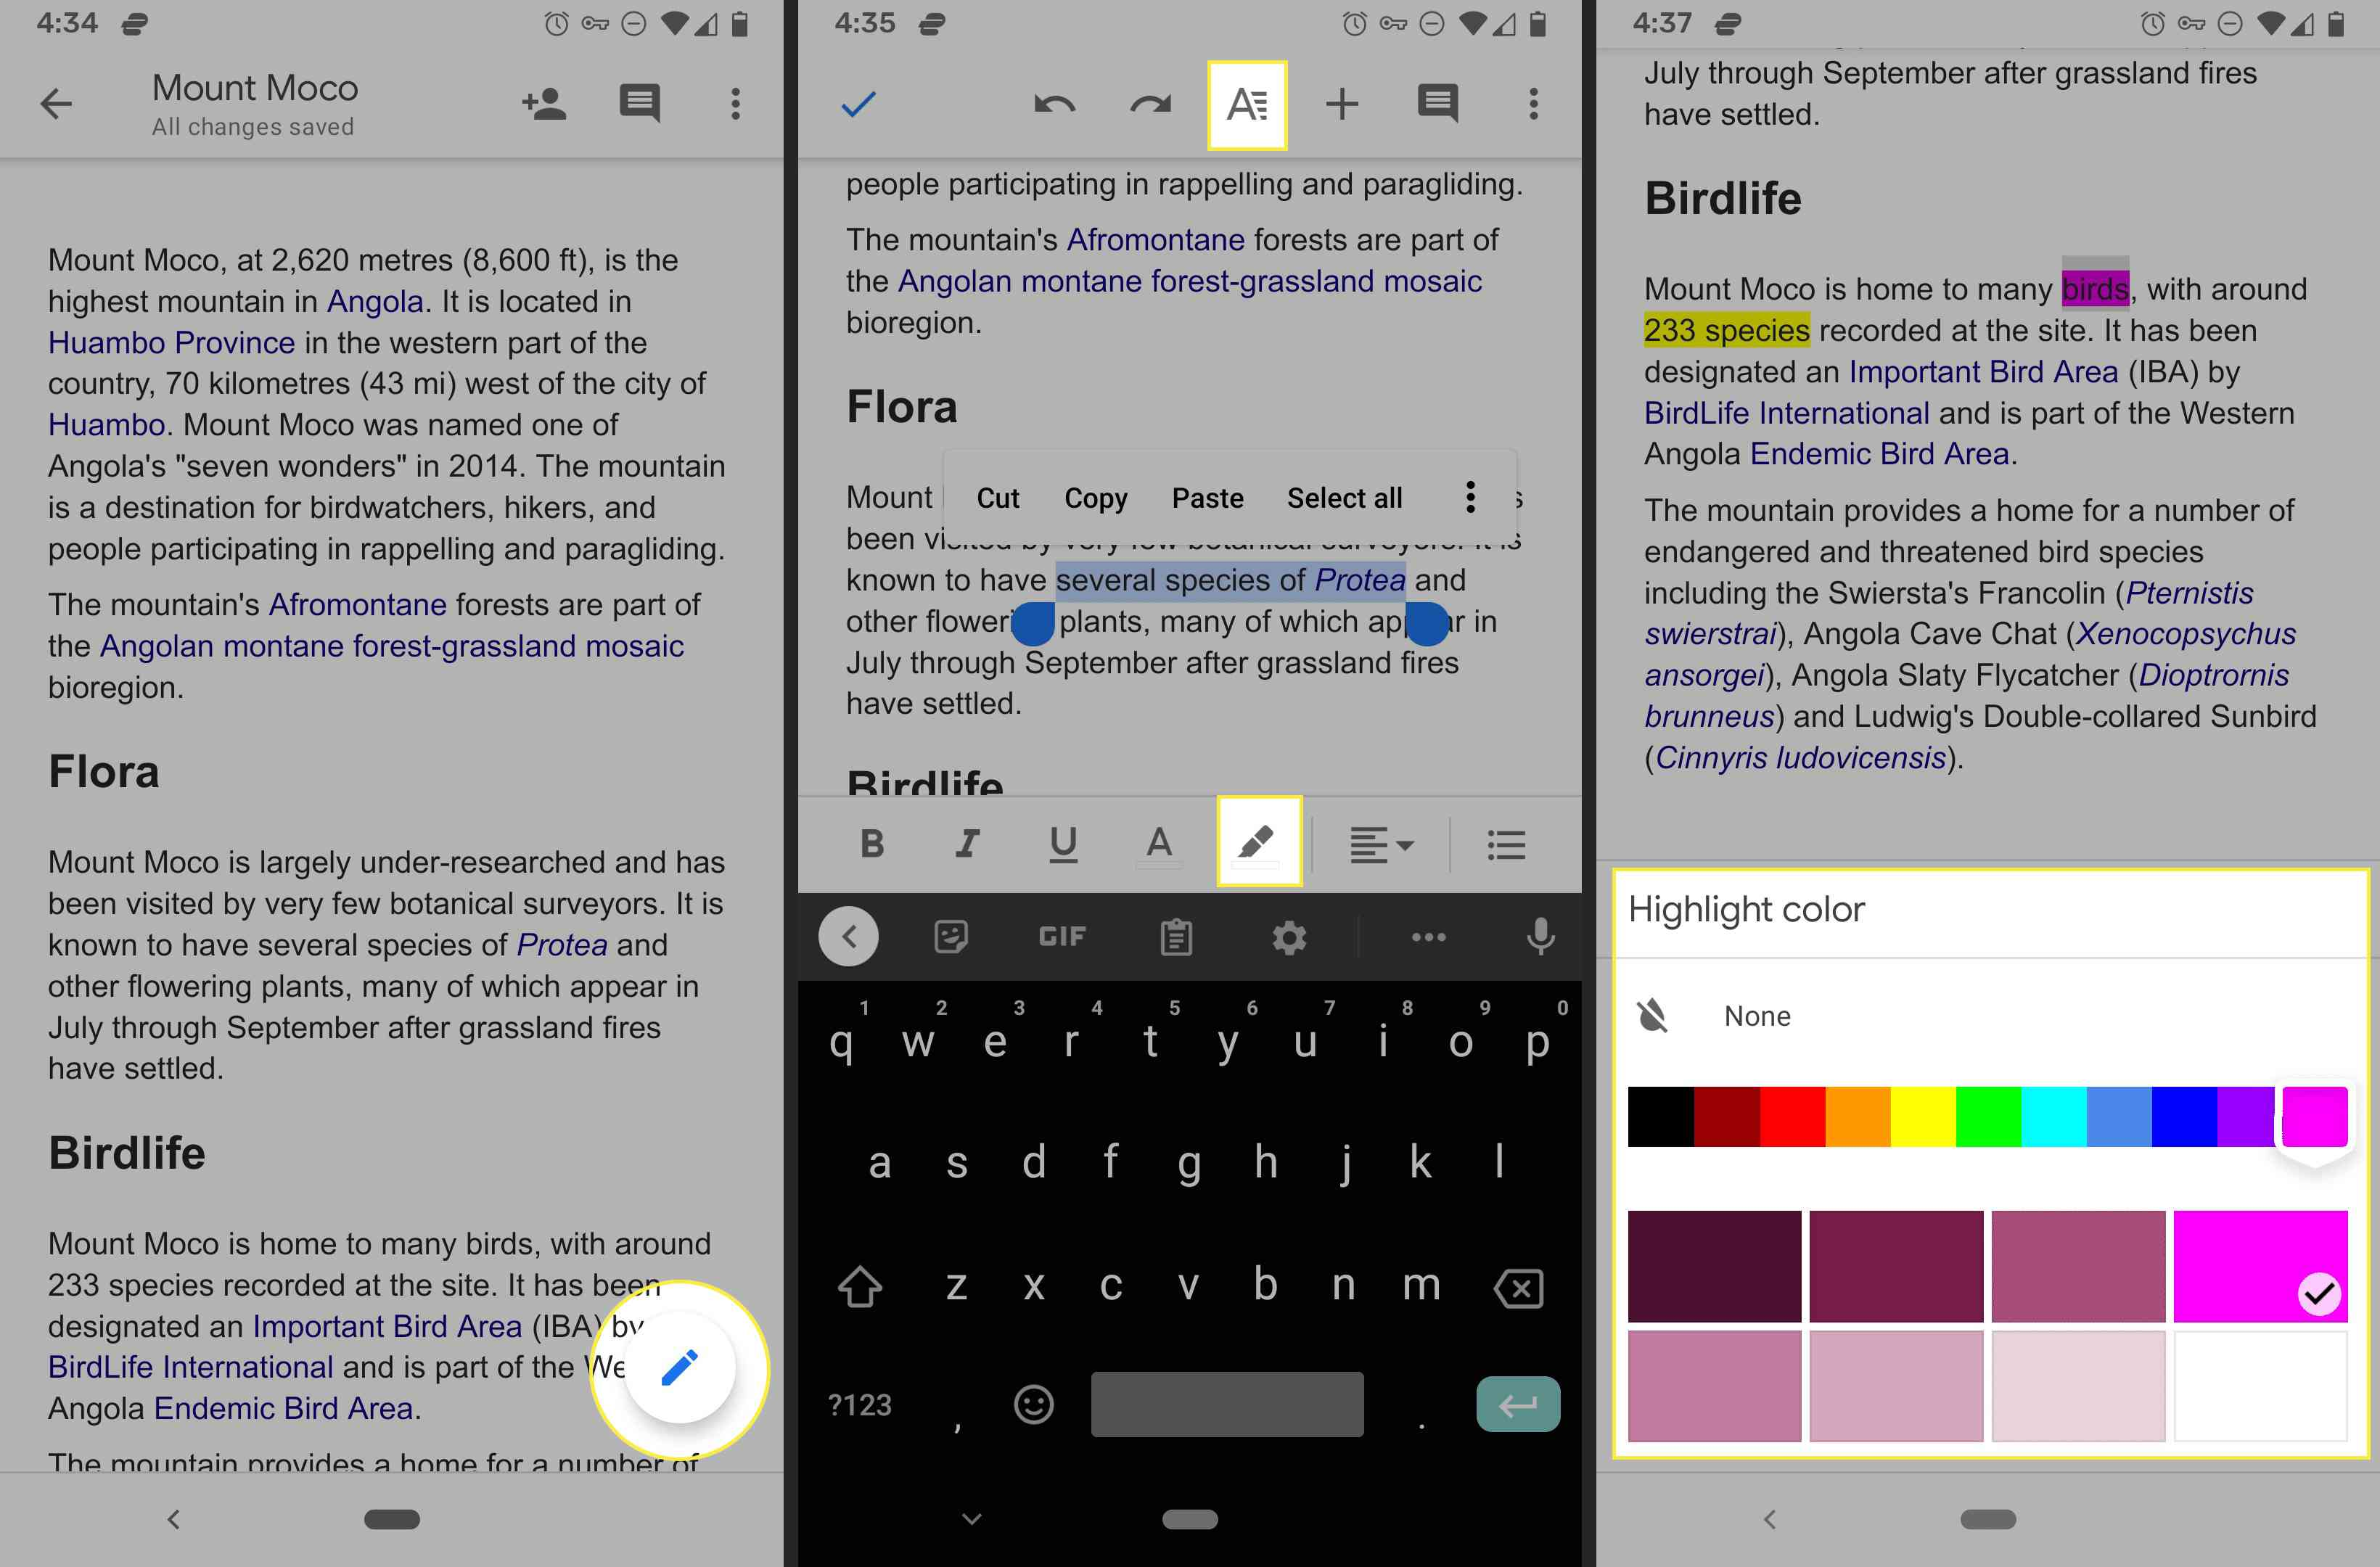 Google Docs highlighter in the Android mobile app.